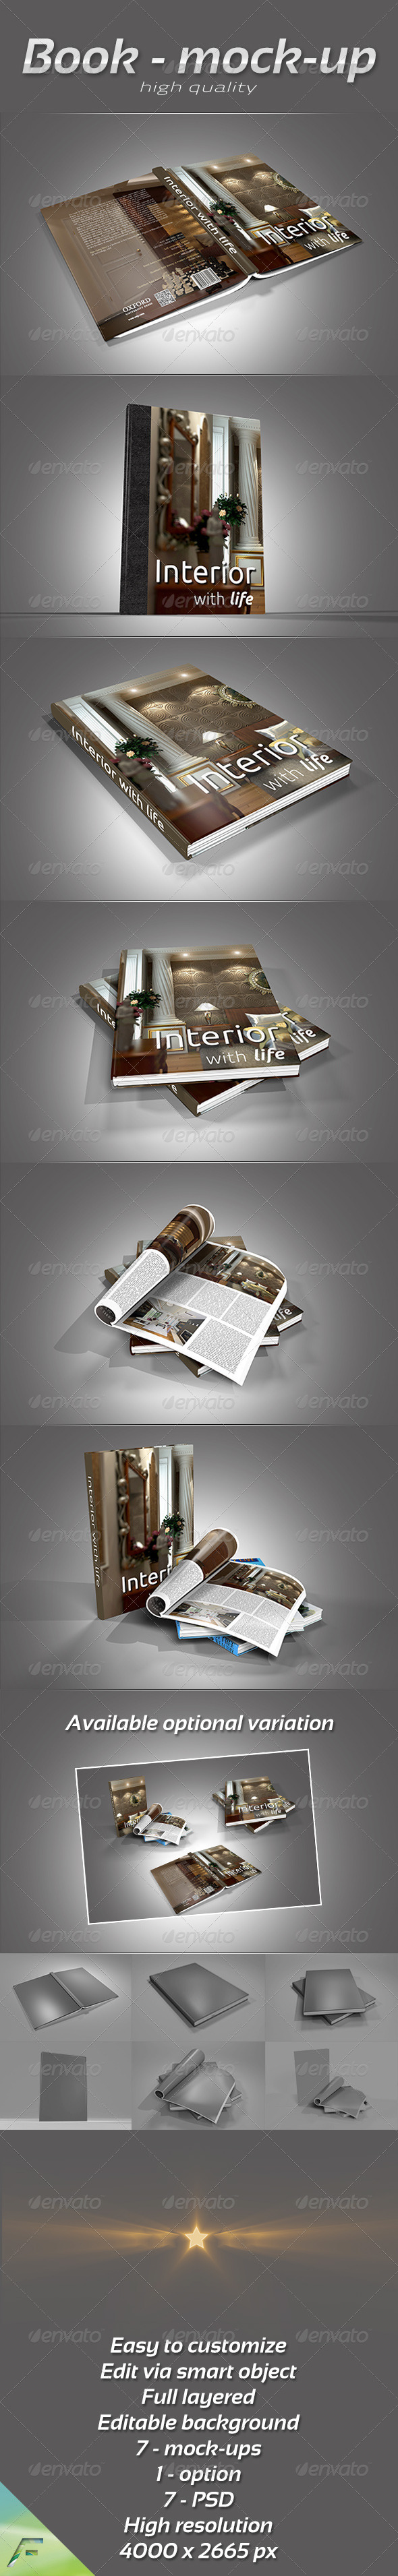 Book Collection Mock-Up - Print Product Mock-Ups